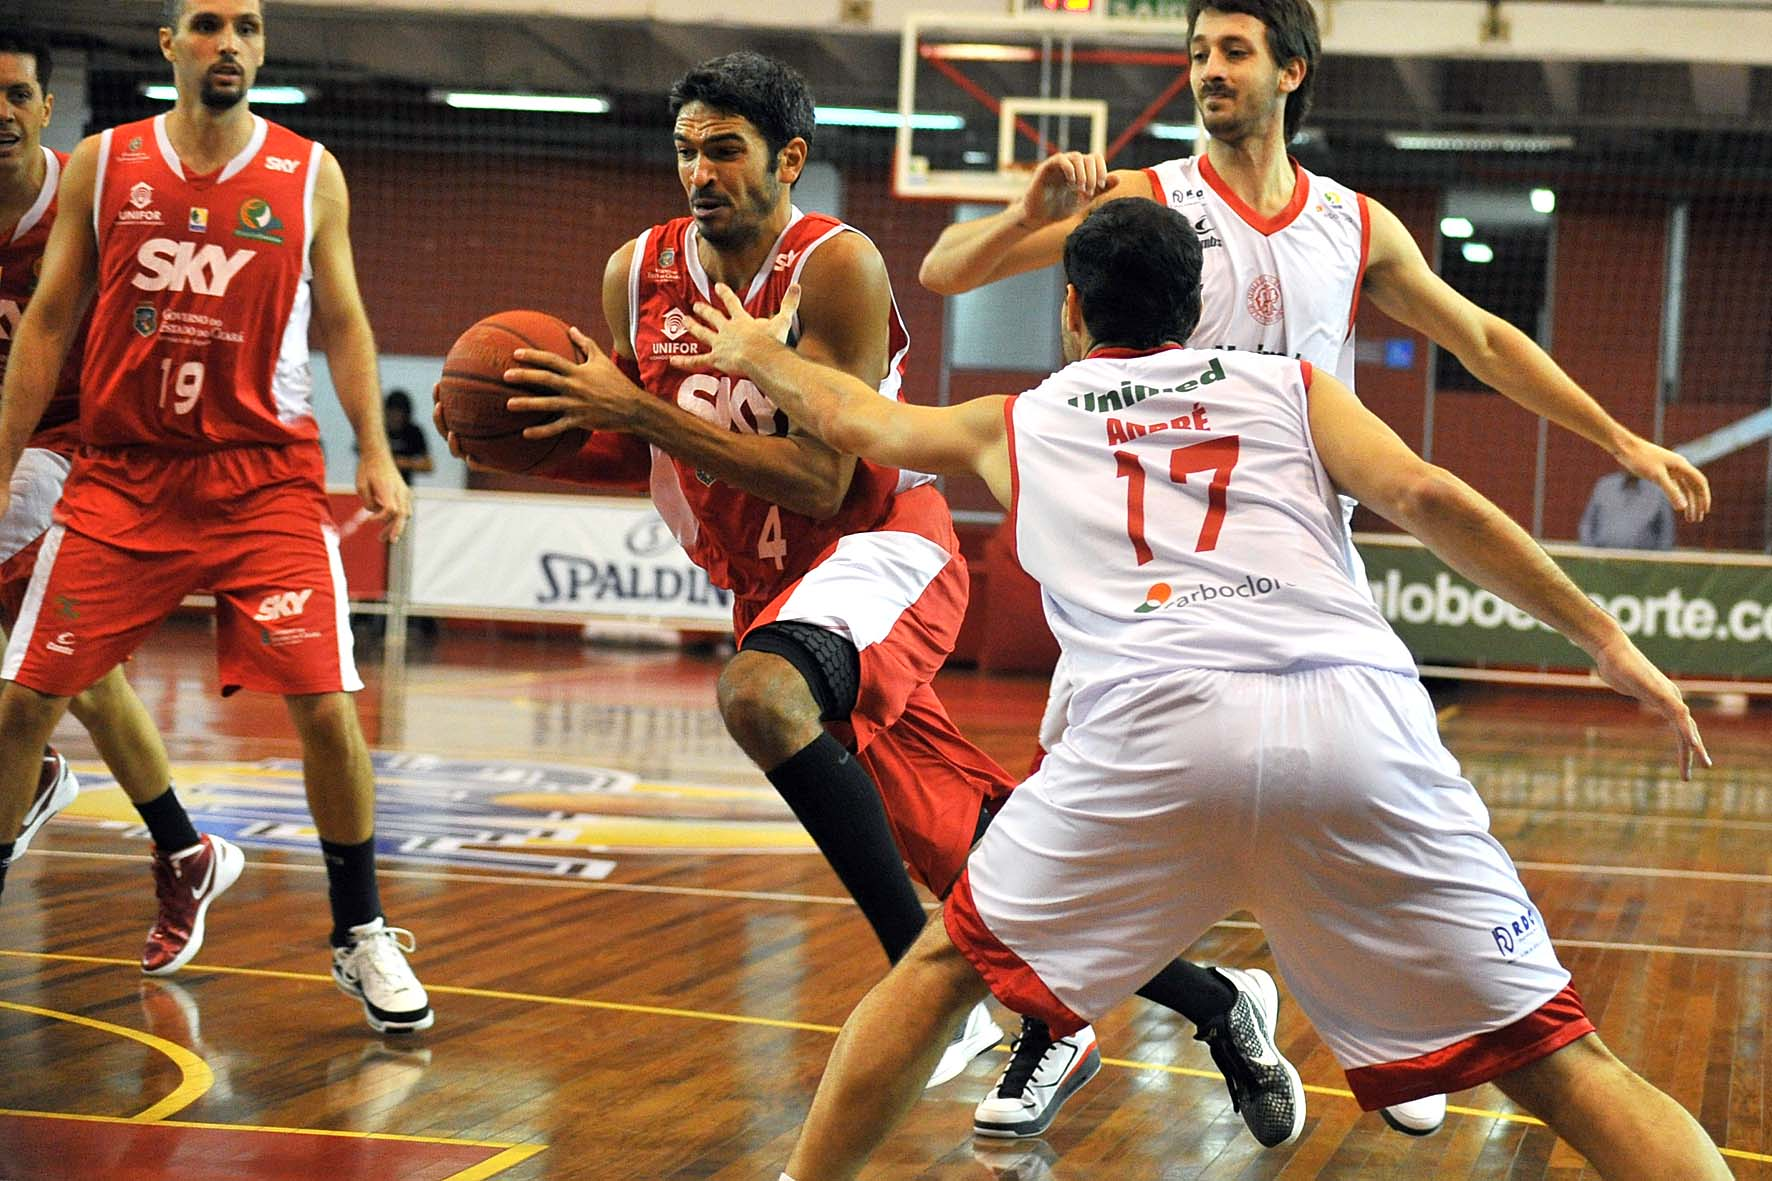 André Góes, do Basquete Cearense